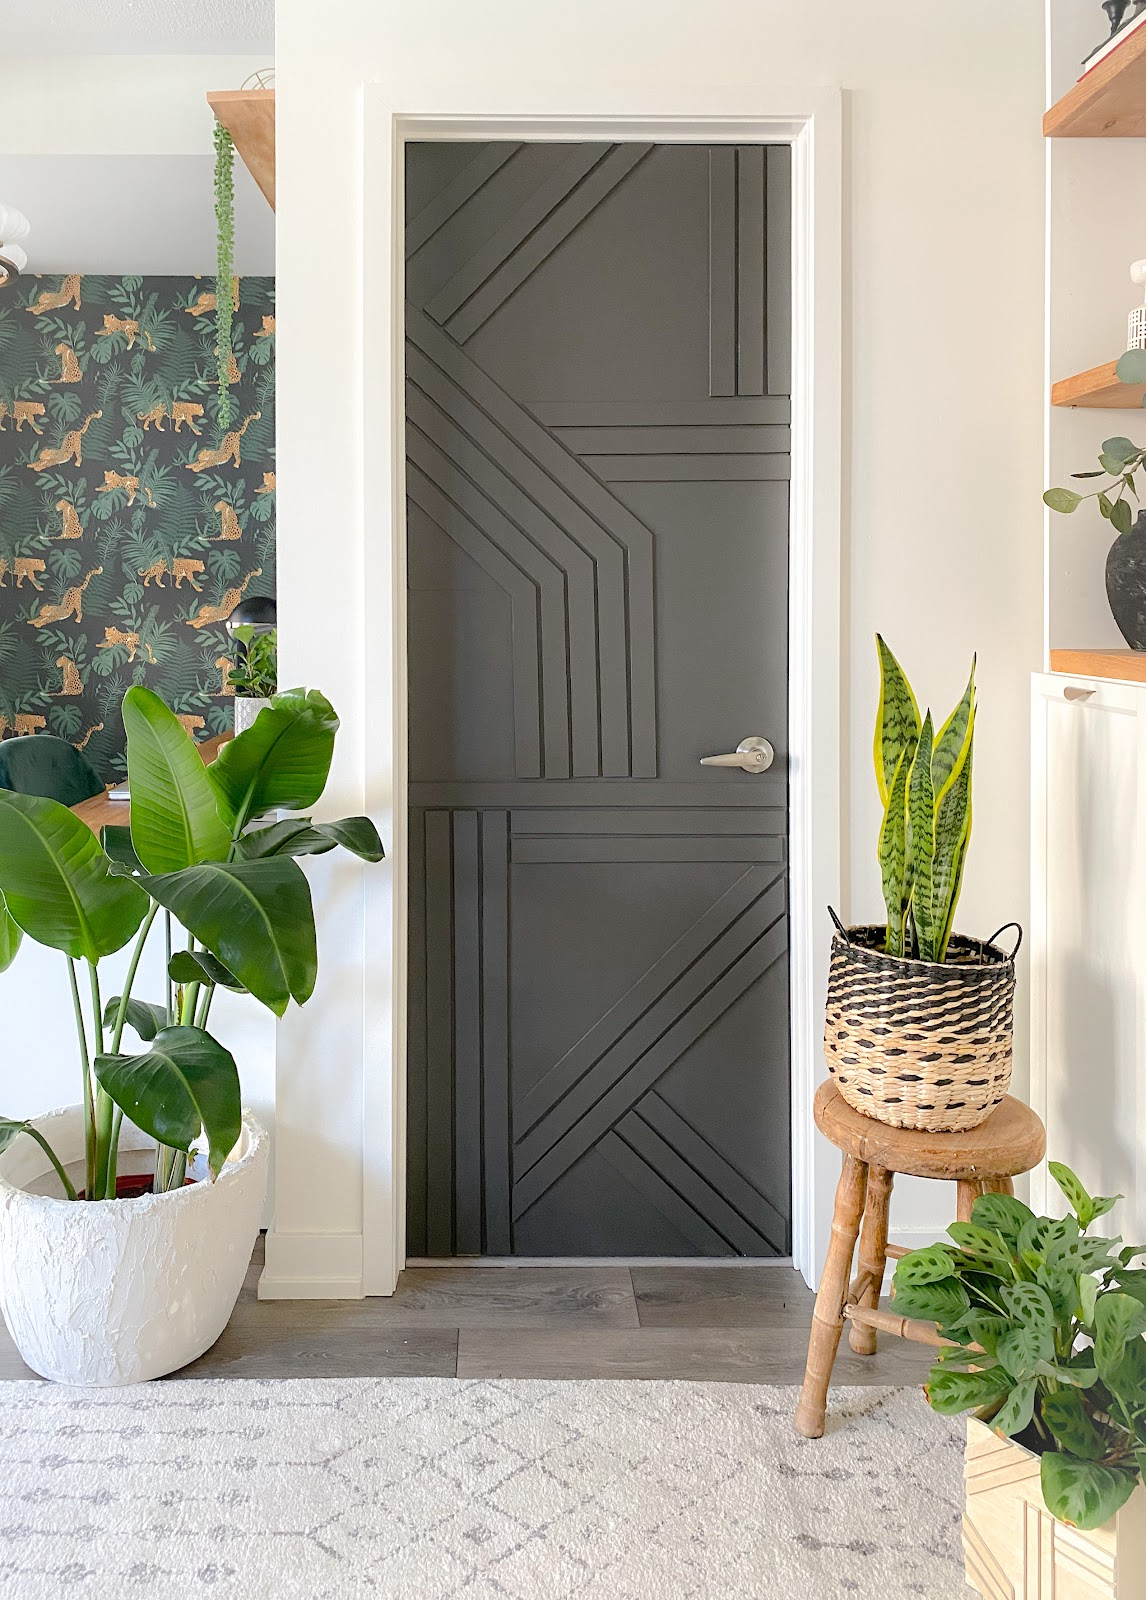 DIY modern barn door. The colour black works great with the leopard wallpaper in the background